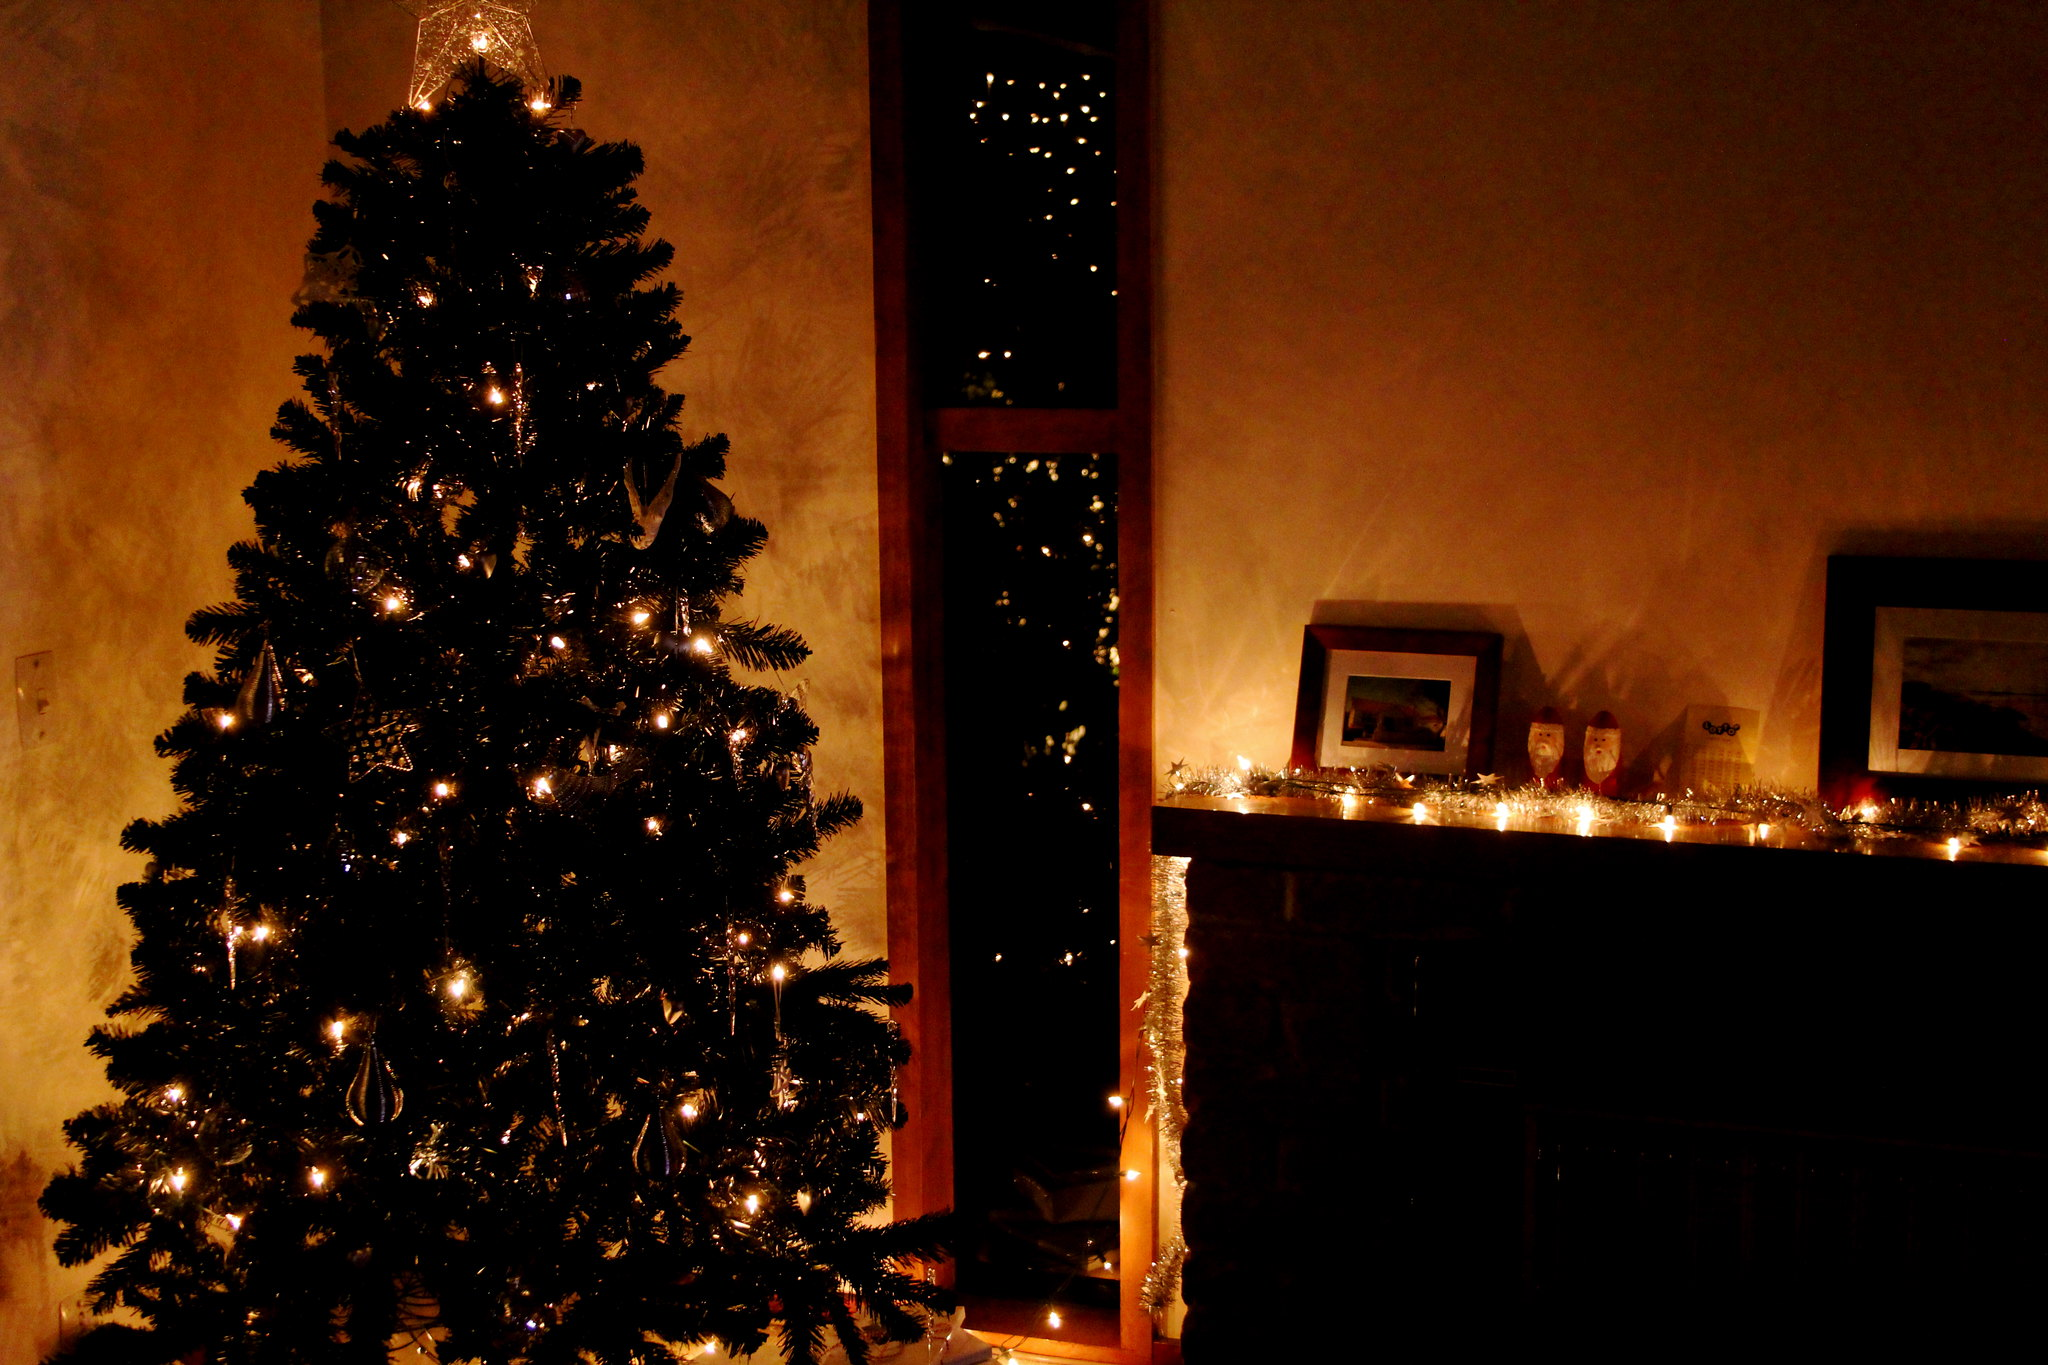 black christmas tree in a room